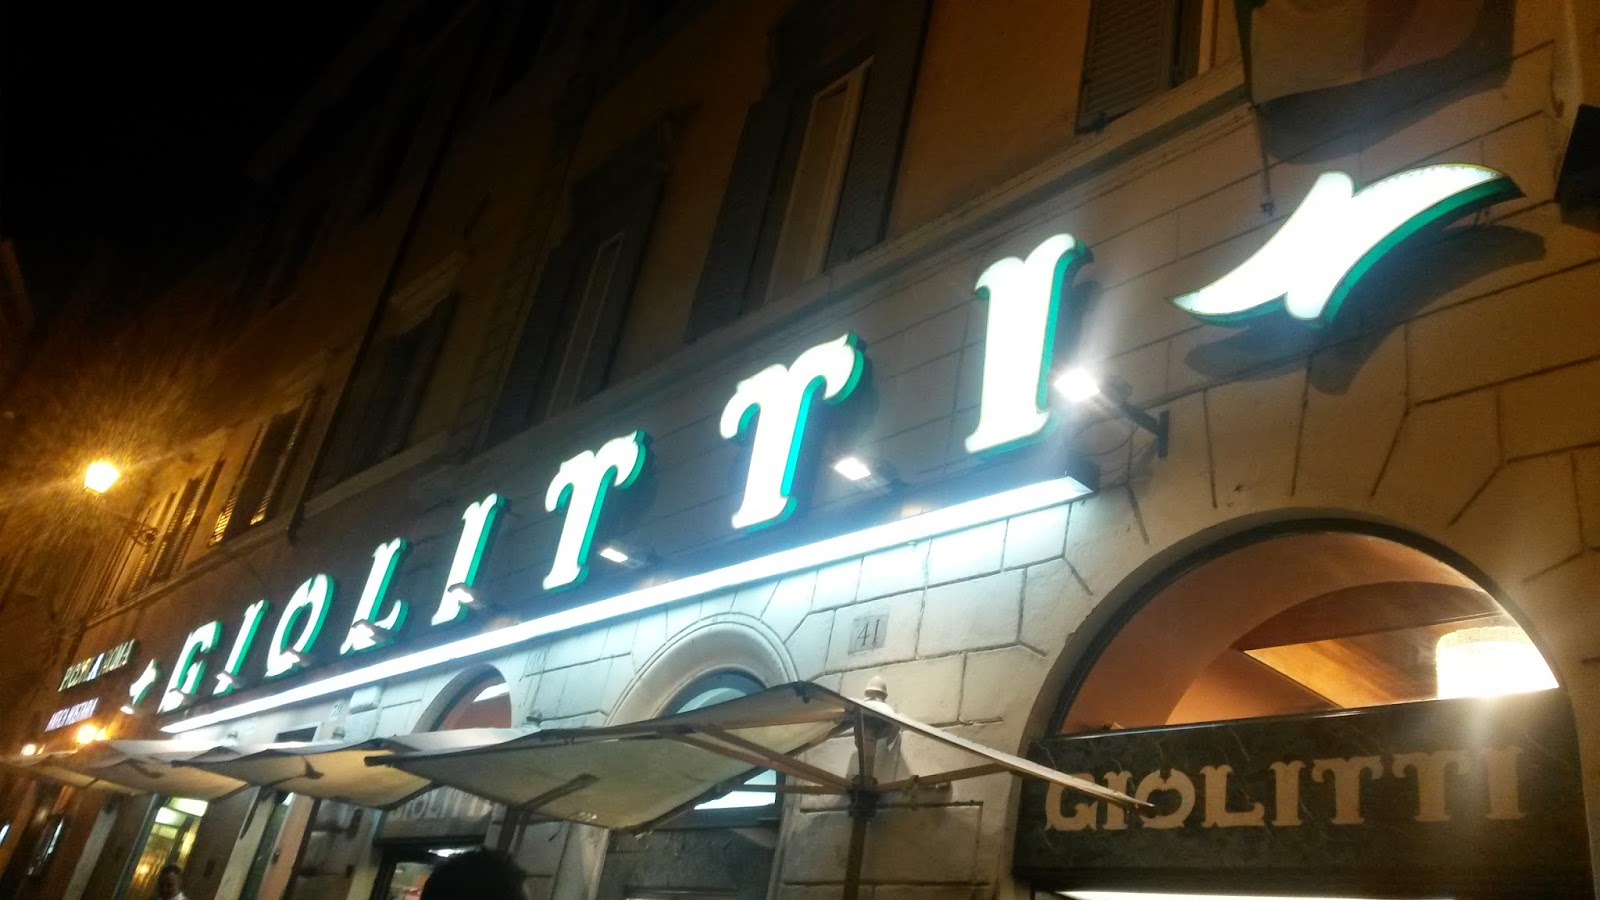 Un sardo in giro gelateria giolitti a montecitorio for Sede camera deputati